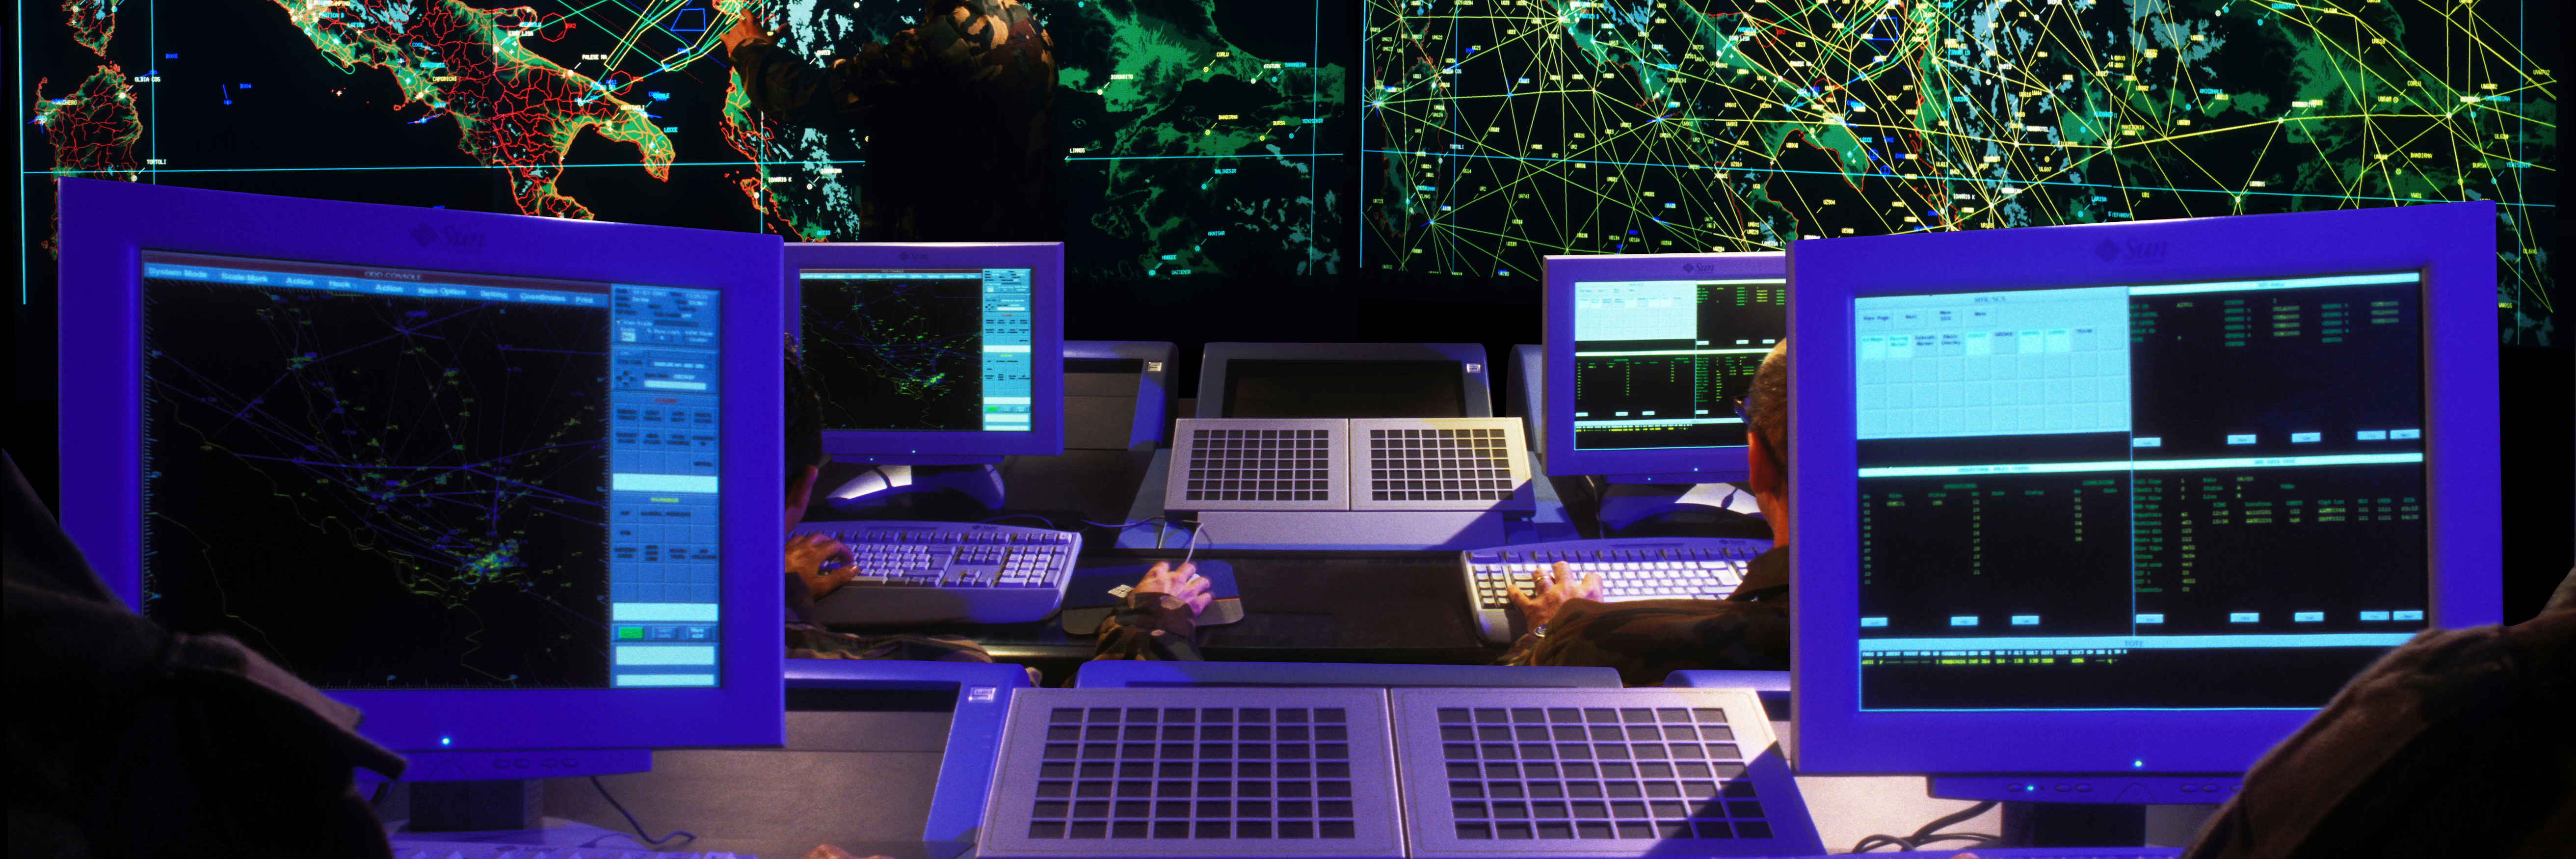 Cyber defence R&T working group boosts innovation